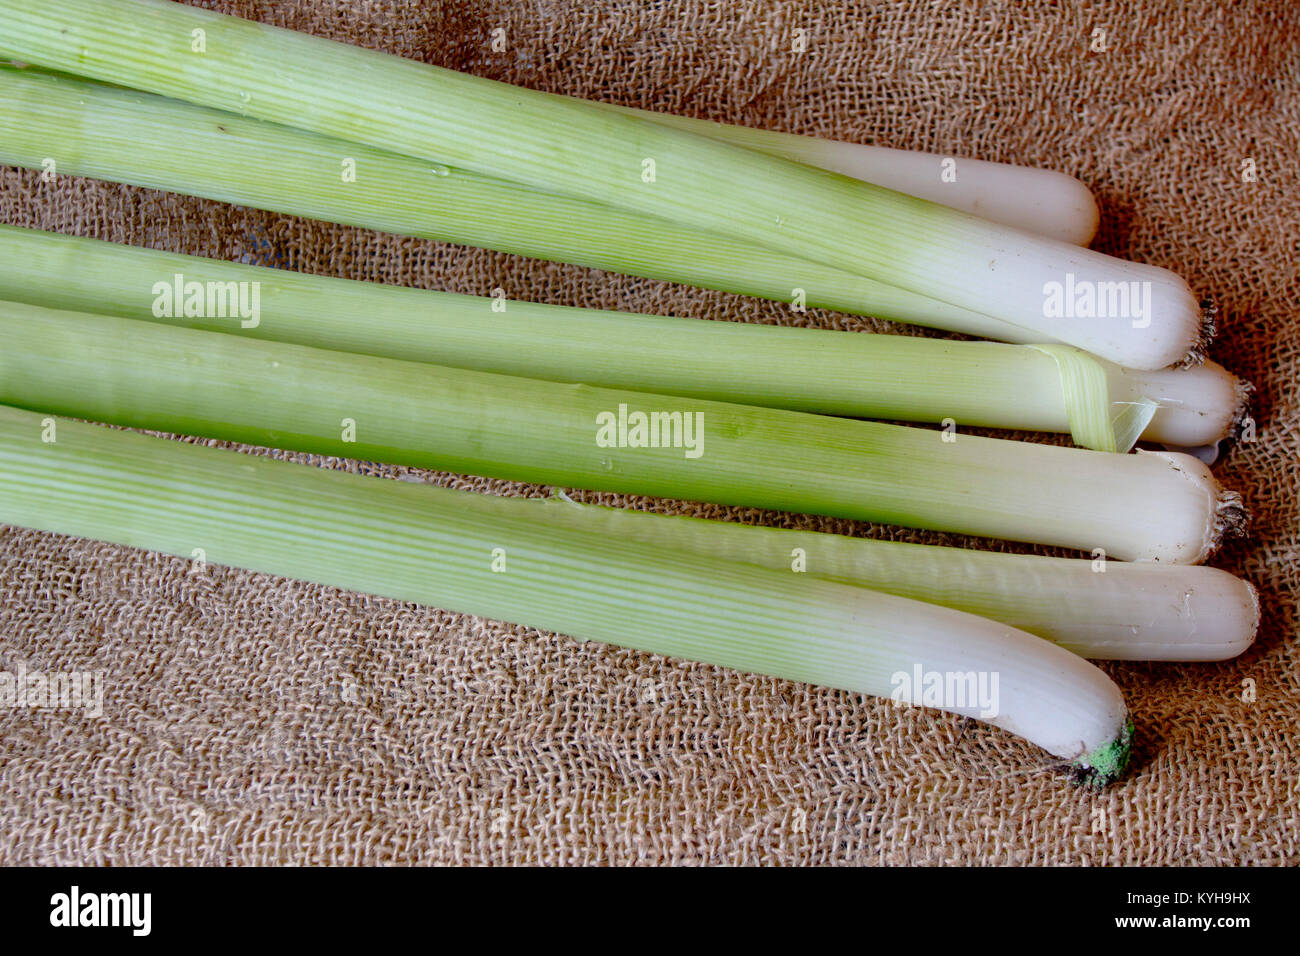 Leek. Fresh organic raw leek vegetable on a burlap background. healthy food. Vitamins background. - Stock Image